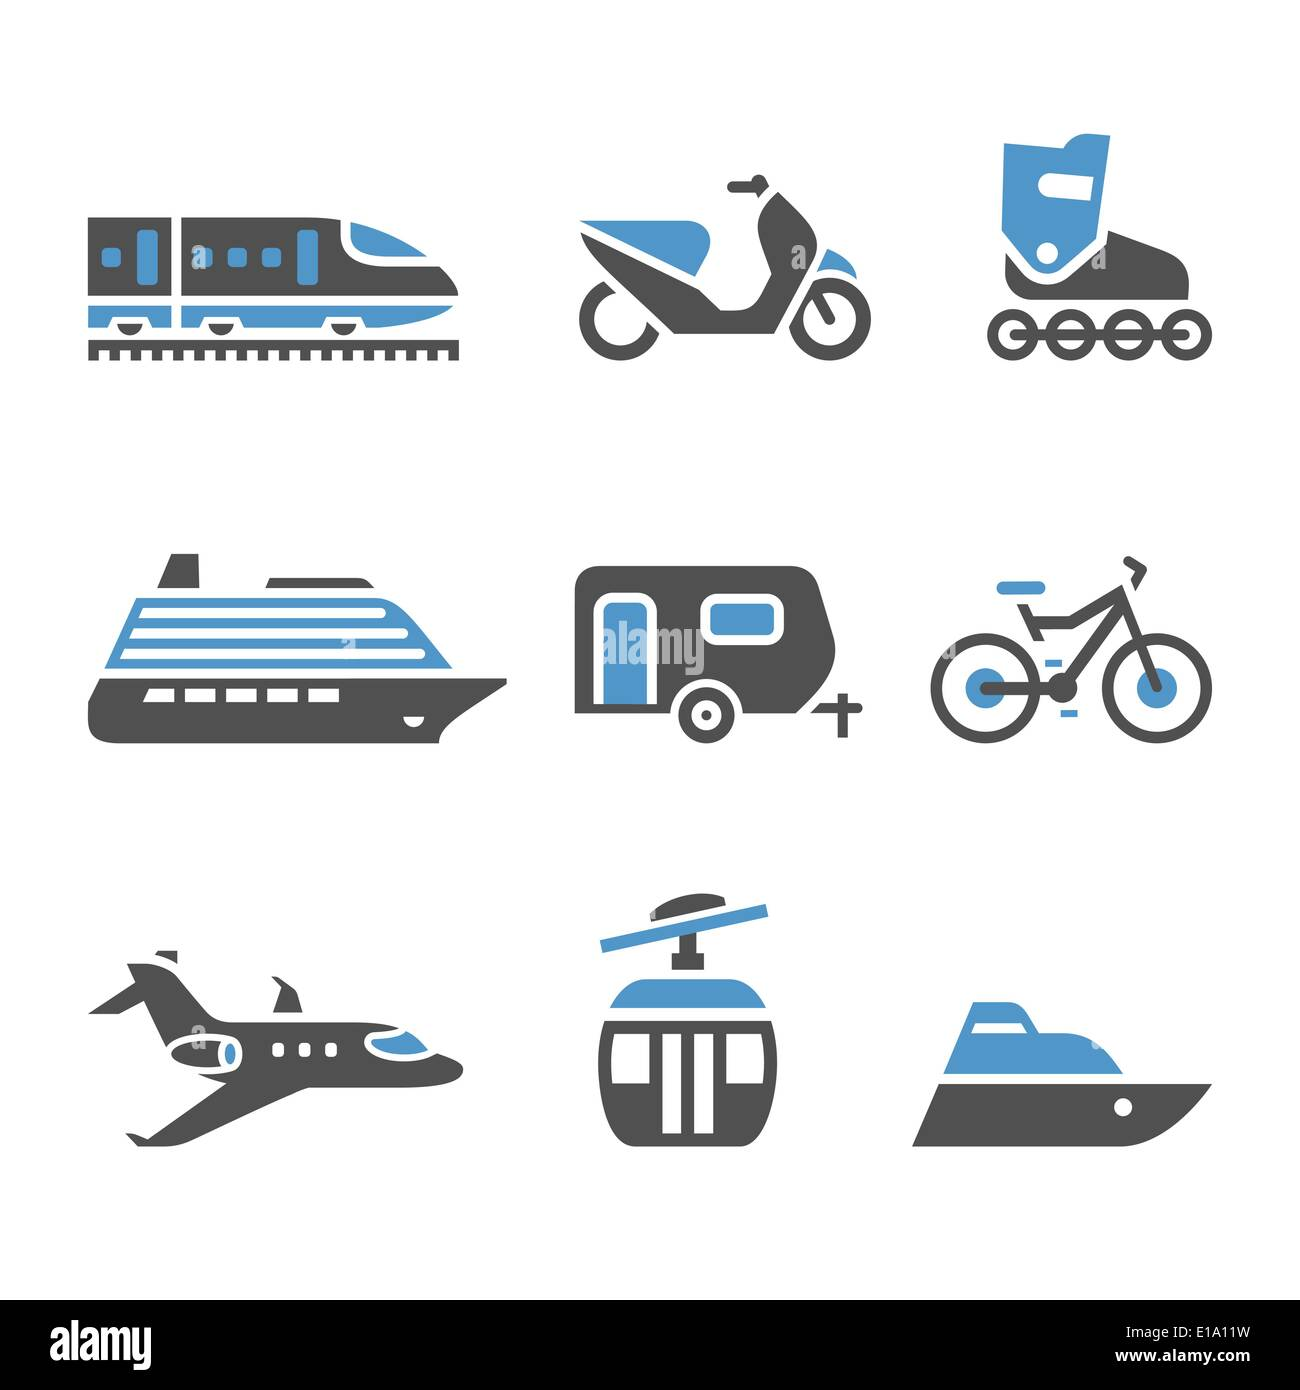 Transport pictograms - A set of fifth - Stock Image